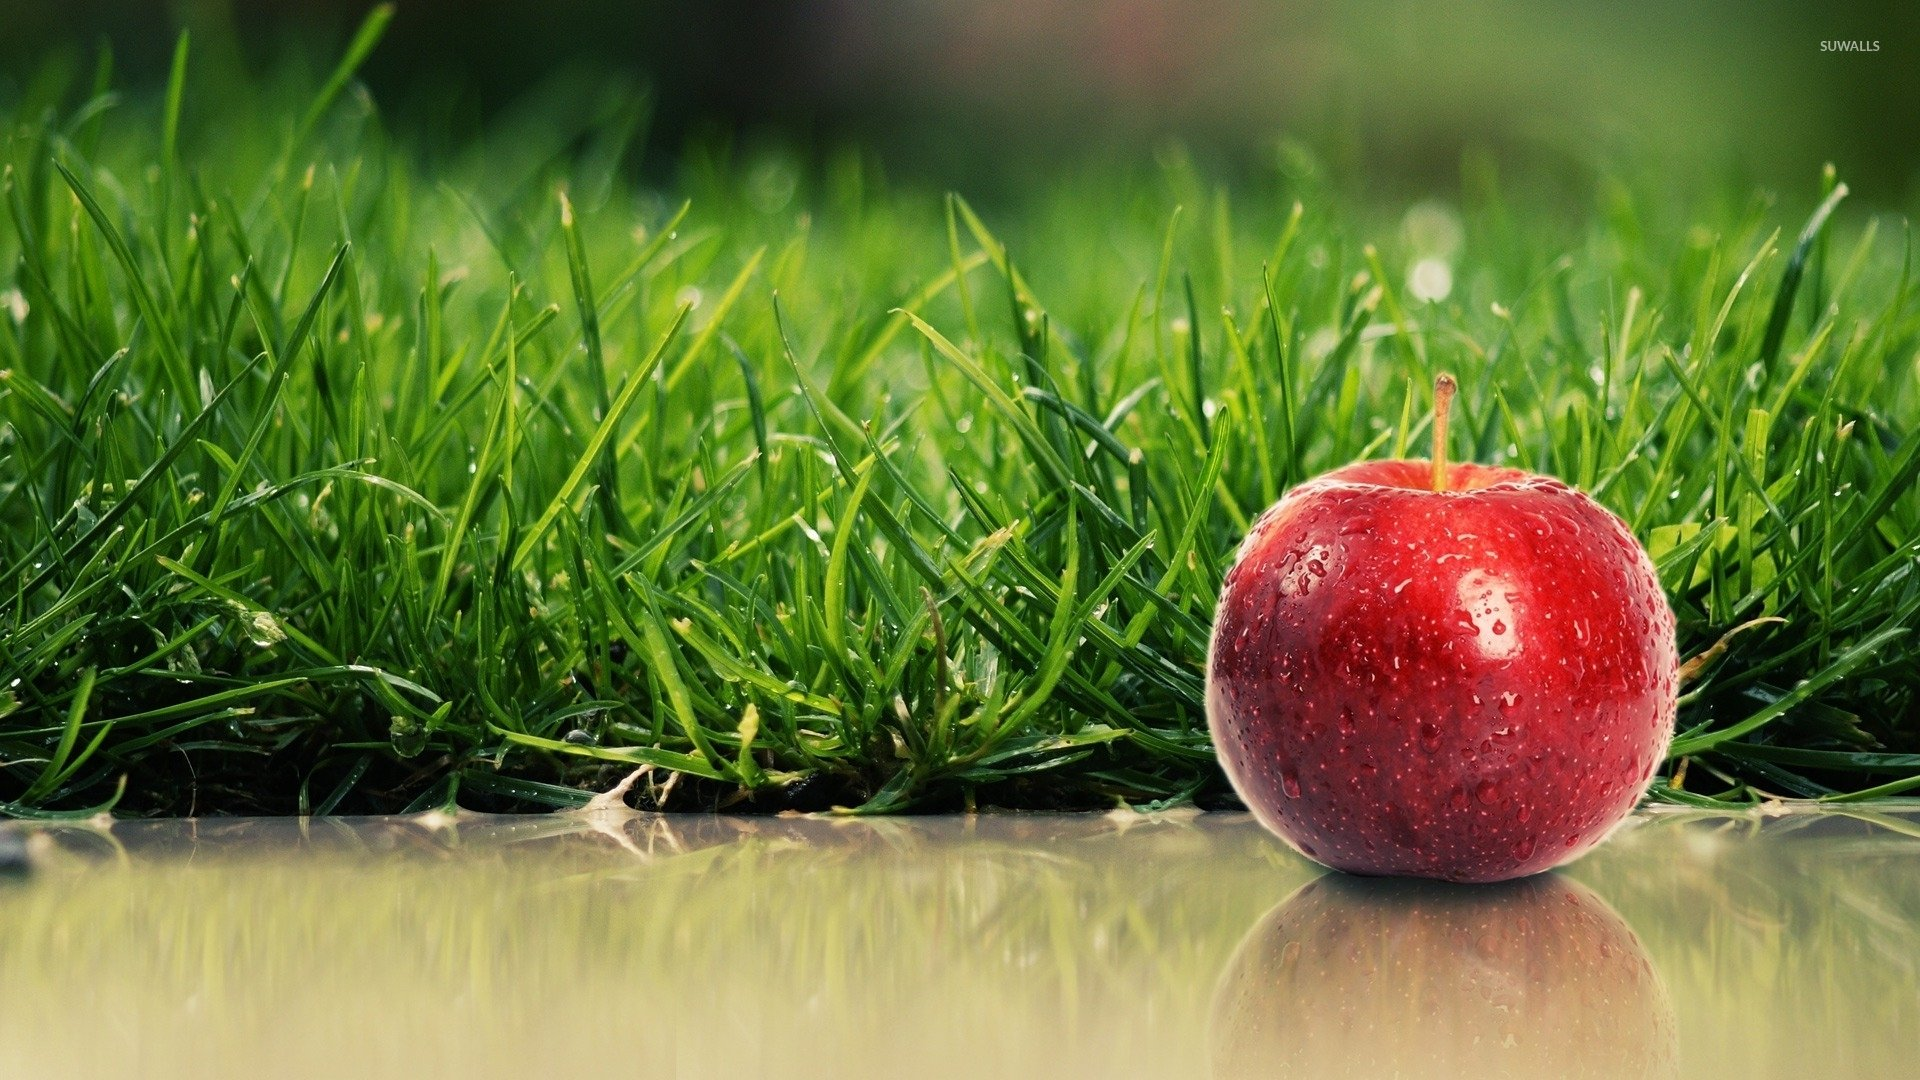 Red apple with water drops by the green grass wallpaper 1920x1080